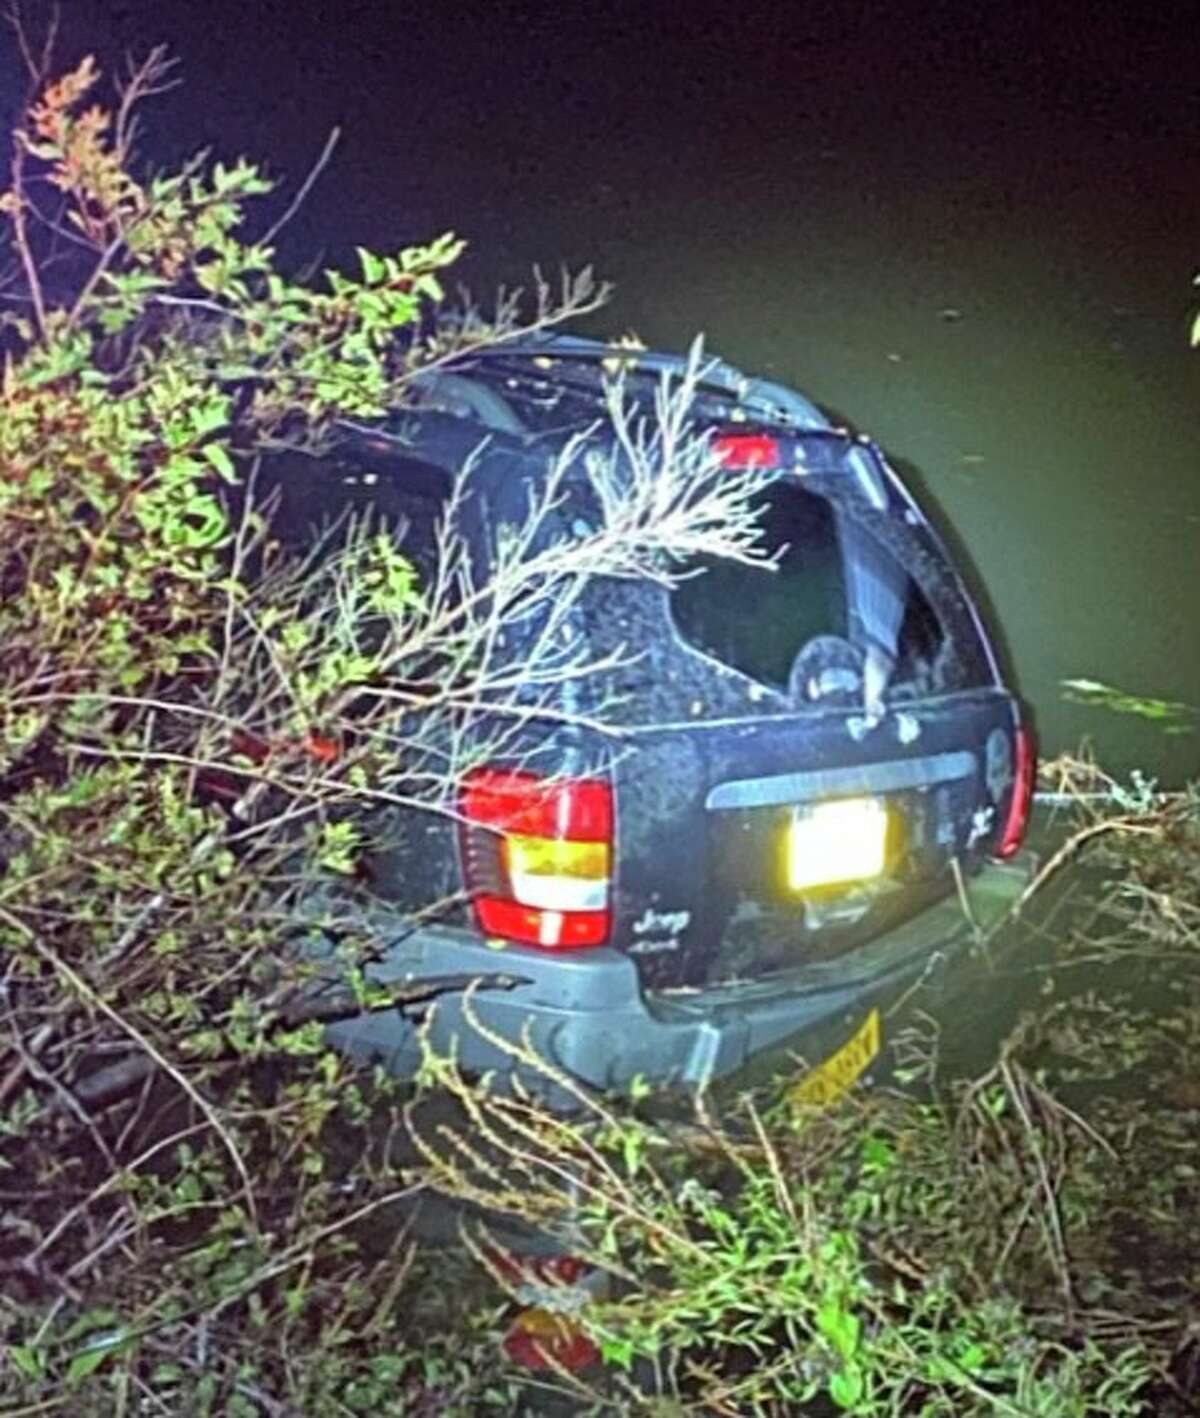 The SUV allegedly used by a Hudson man to flee police was partially submerged in the Hudson River Tuesday night.